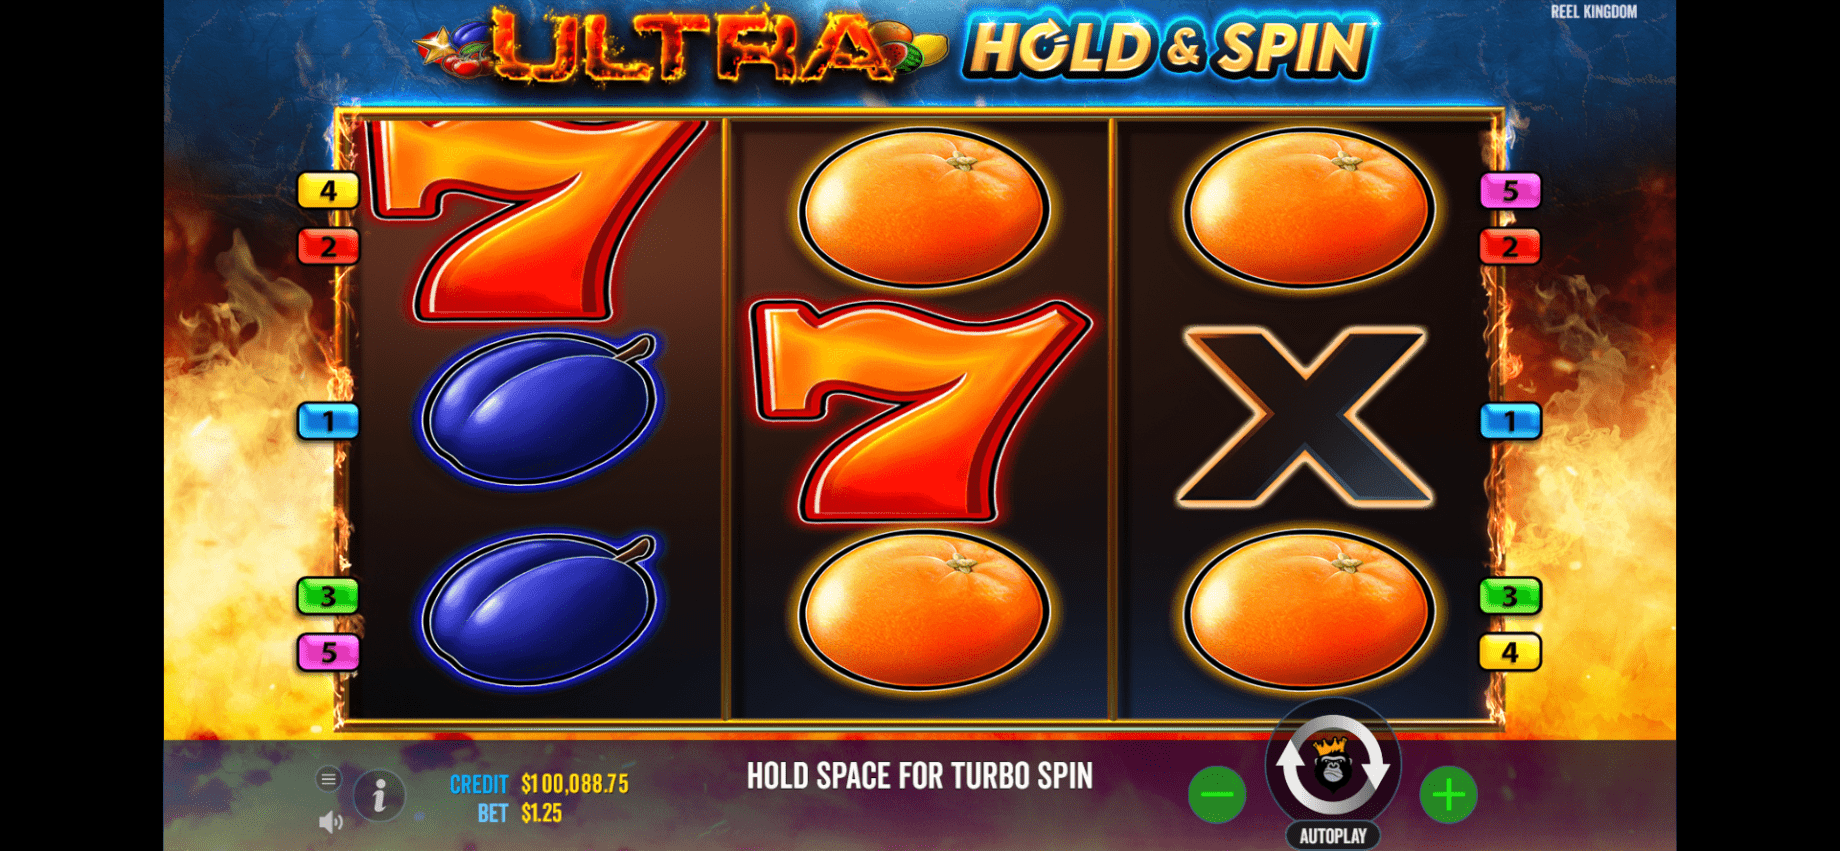 Slot online Ultra Hold & Spin